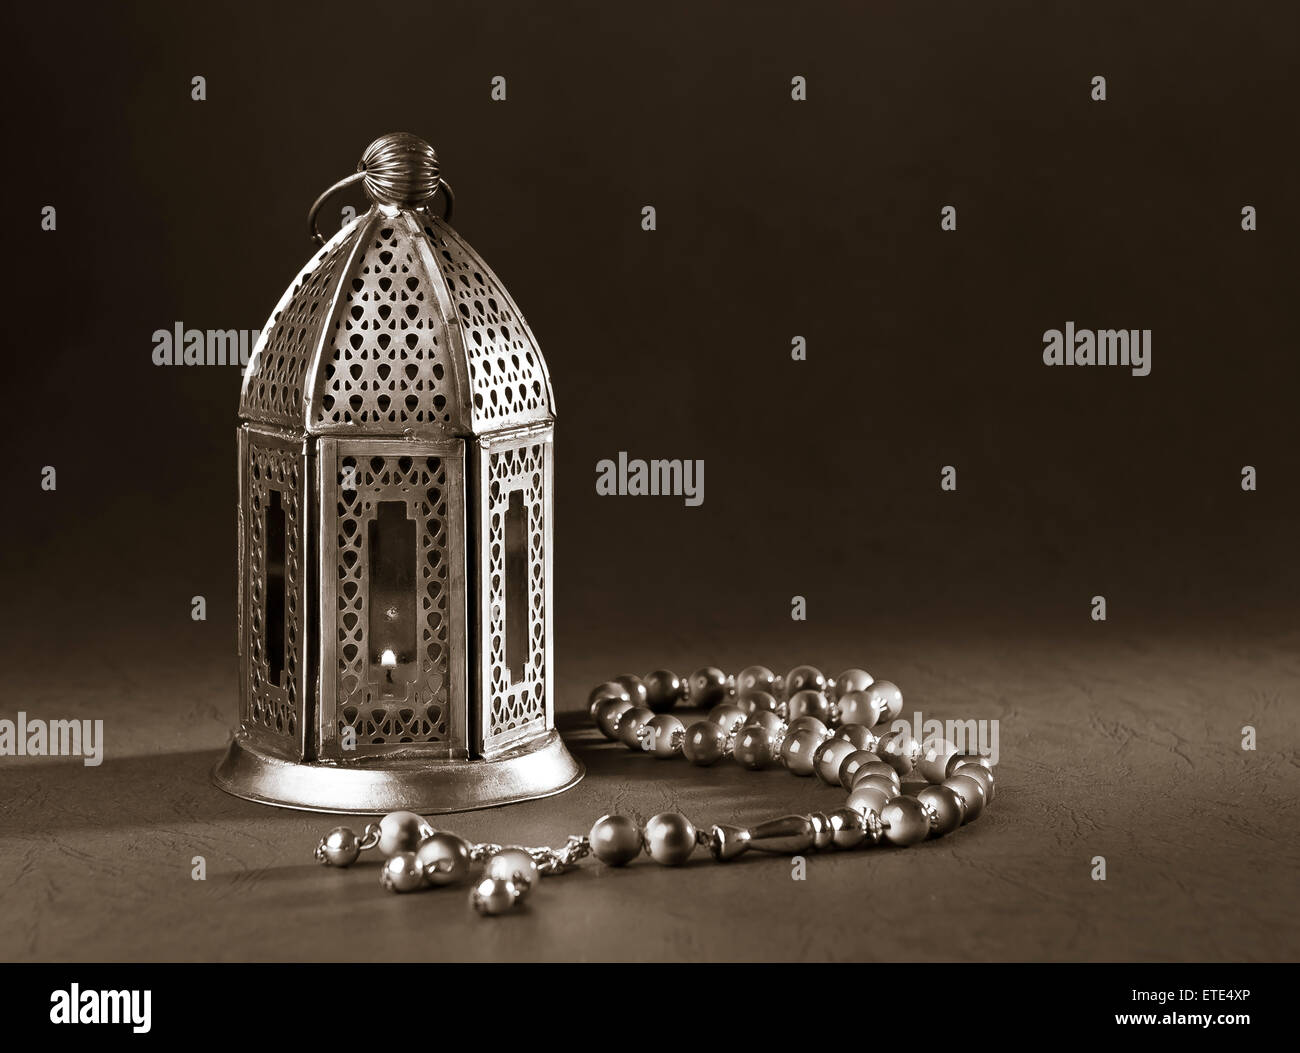 A metallic Ramadan lamp with Islamic rosary beads on black background. Monochromatic image. - Stock Image